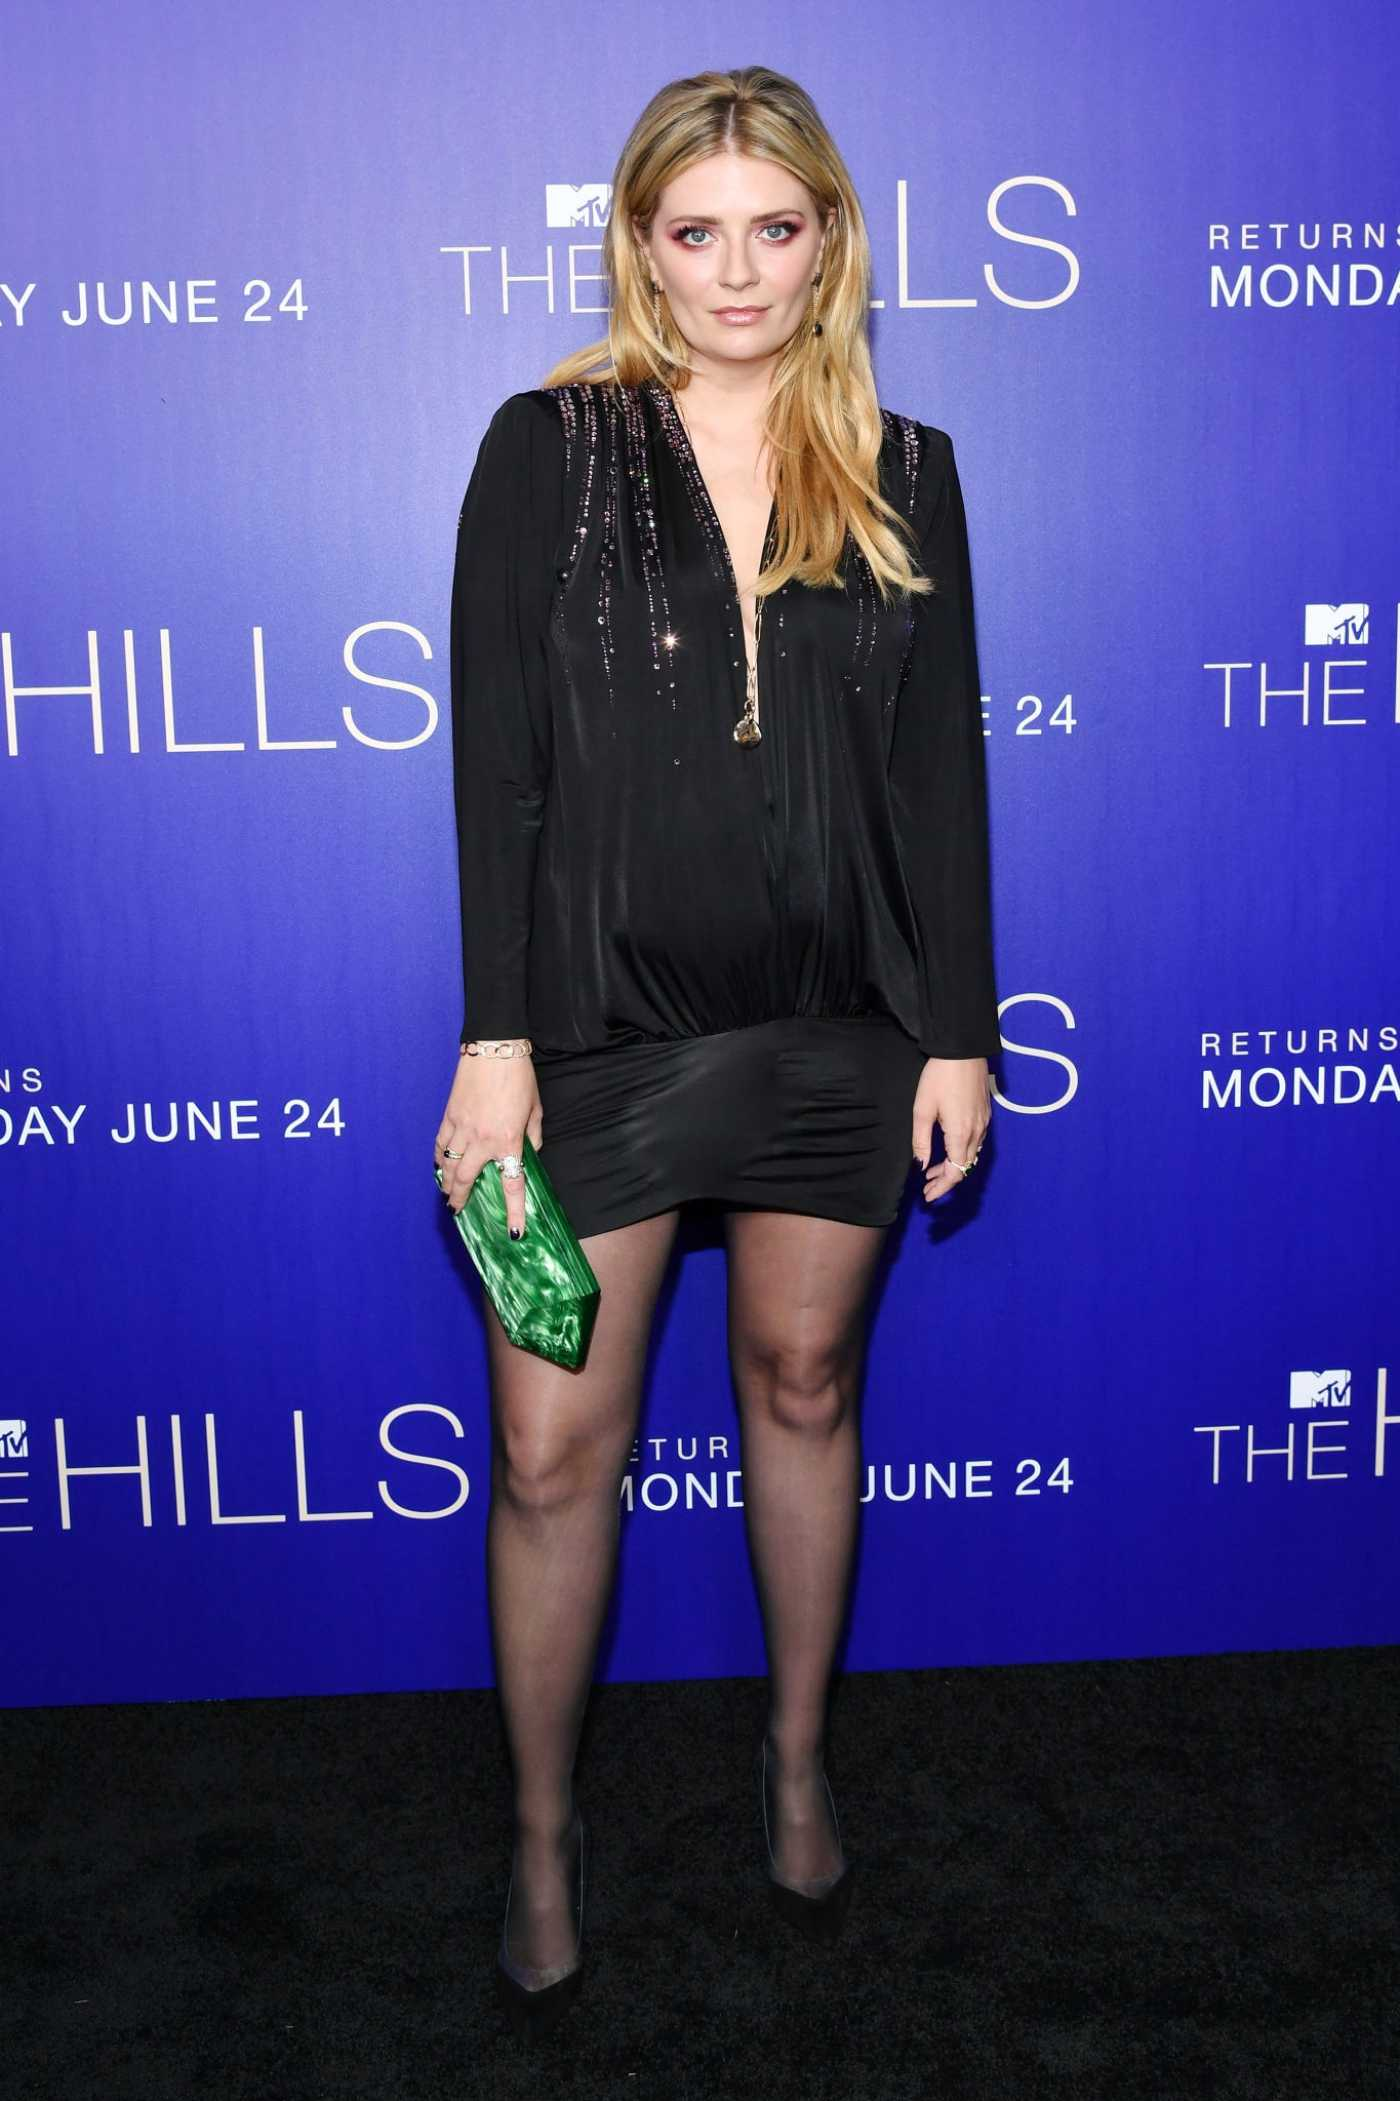 Mischa Barton Attends The Hills: New Beginnings Premiere in Los Angeles 06/19/2019